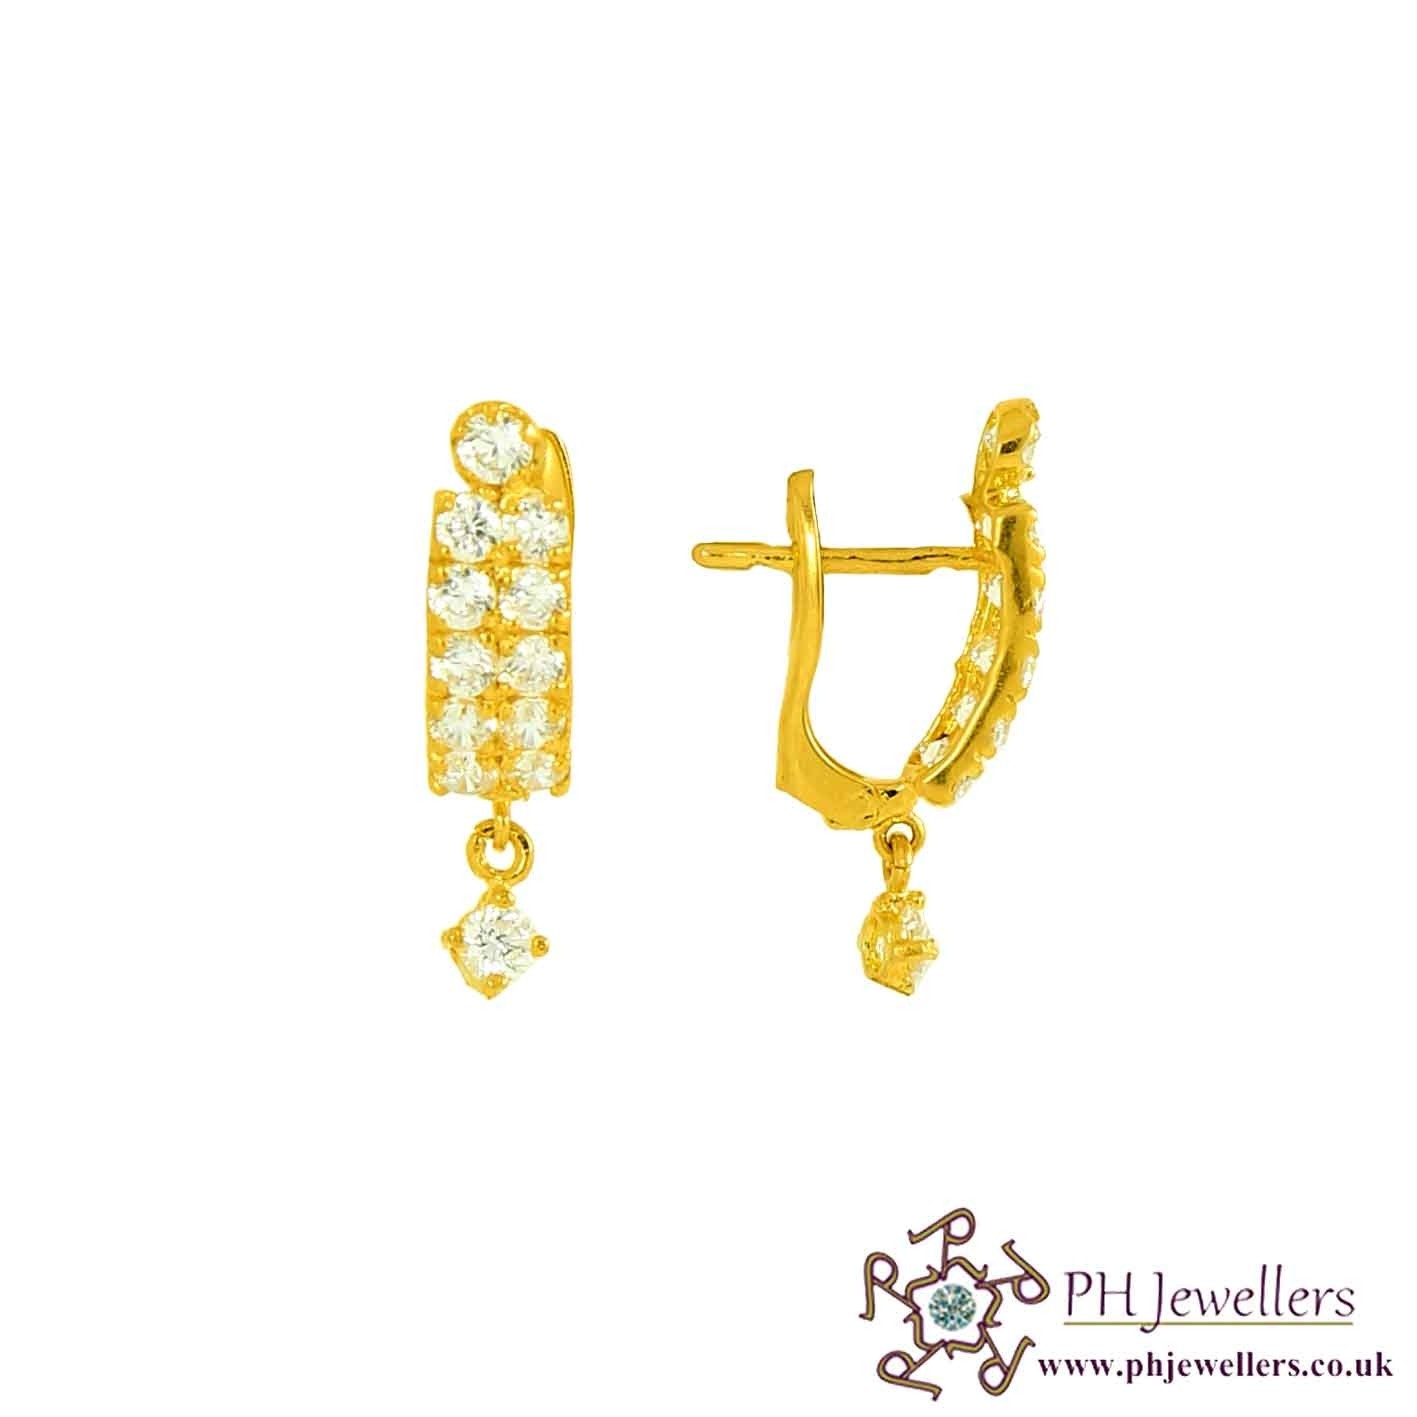 22ct 916 Hallmark Yellow Gold Clip-on Earring with CZ CE32